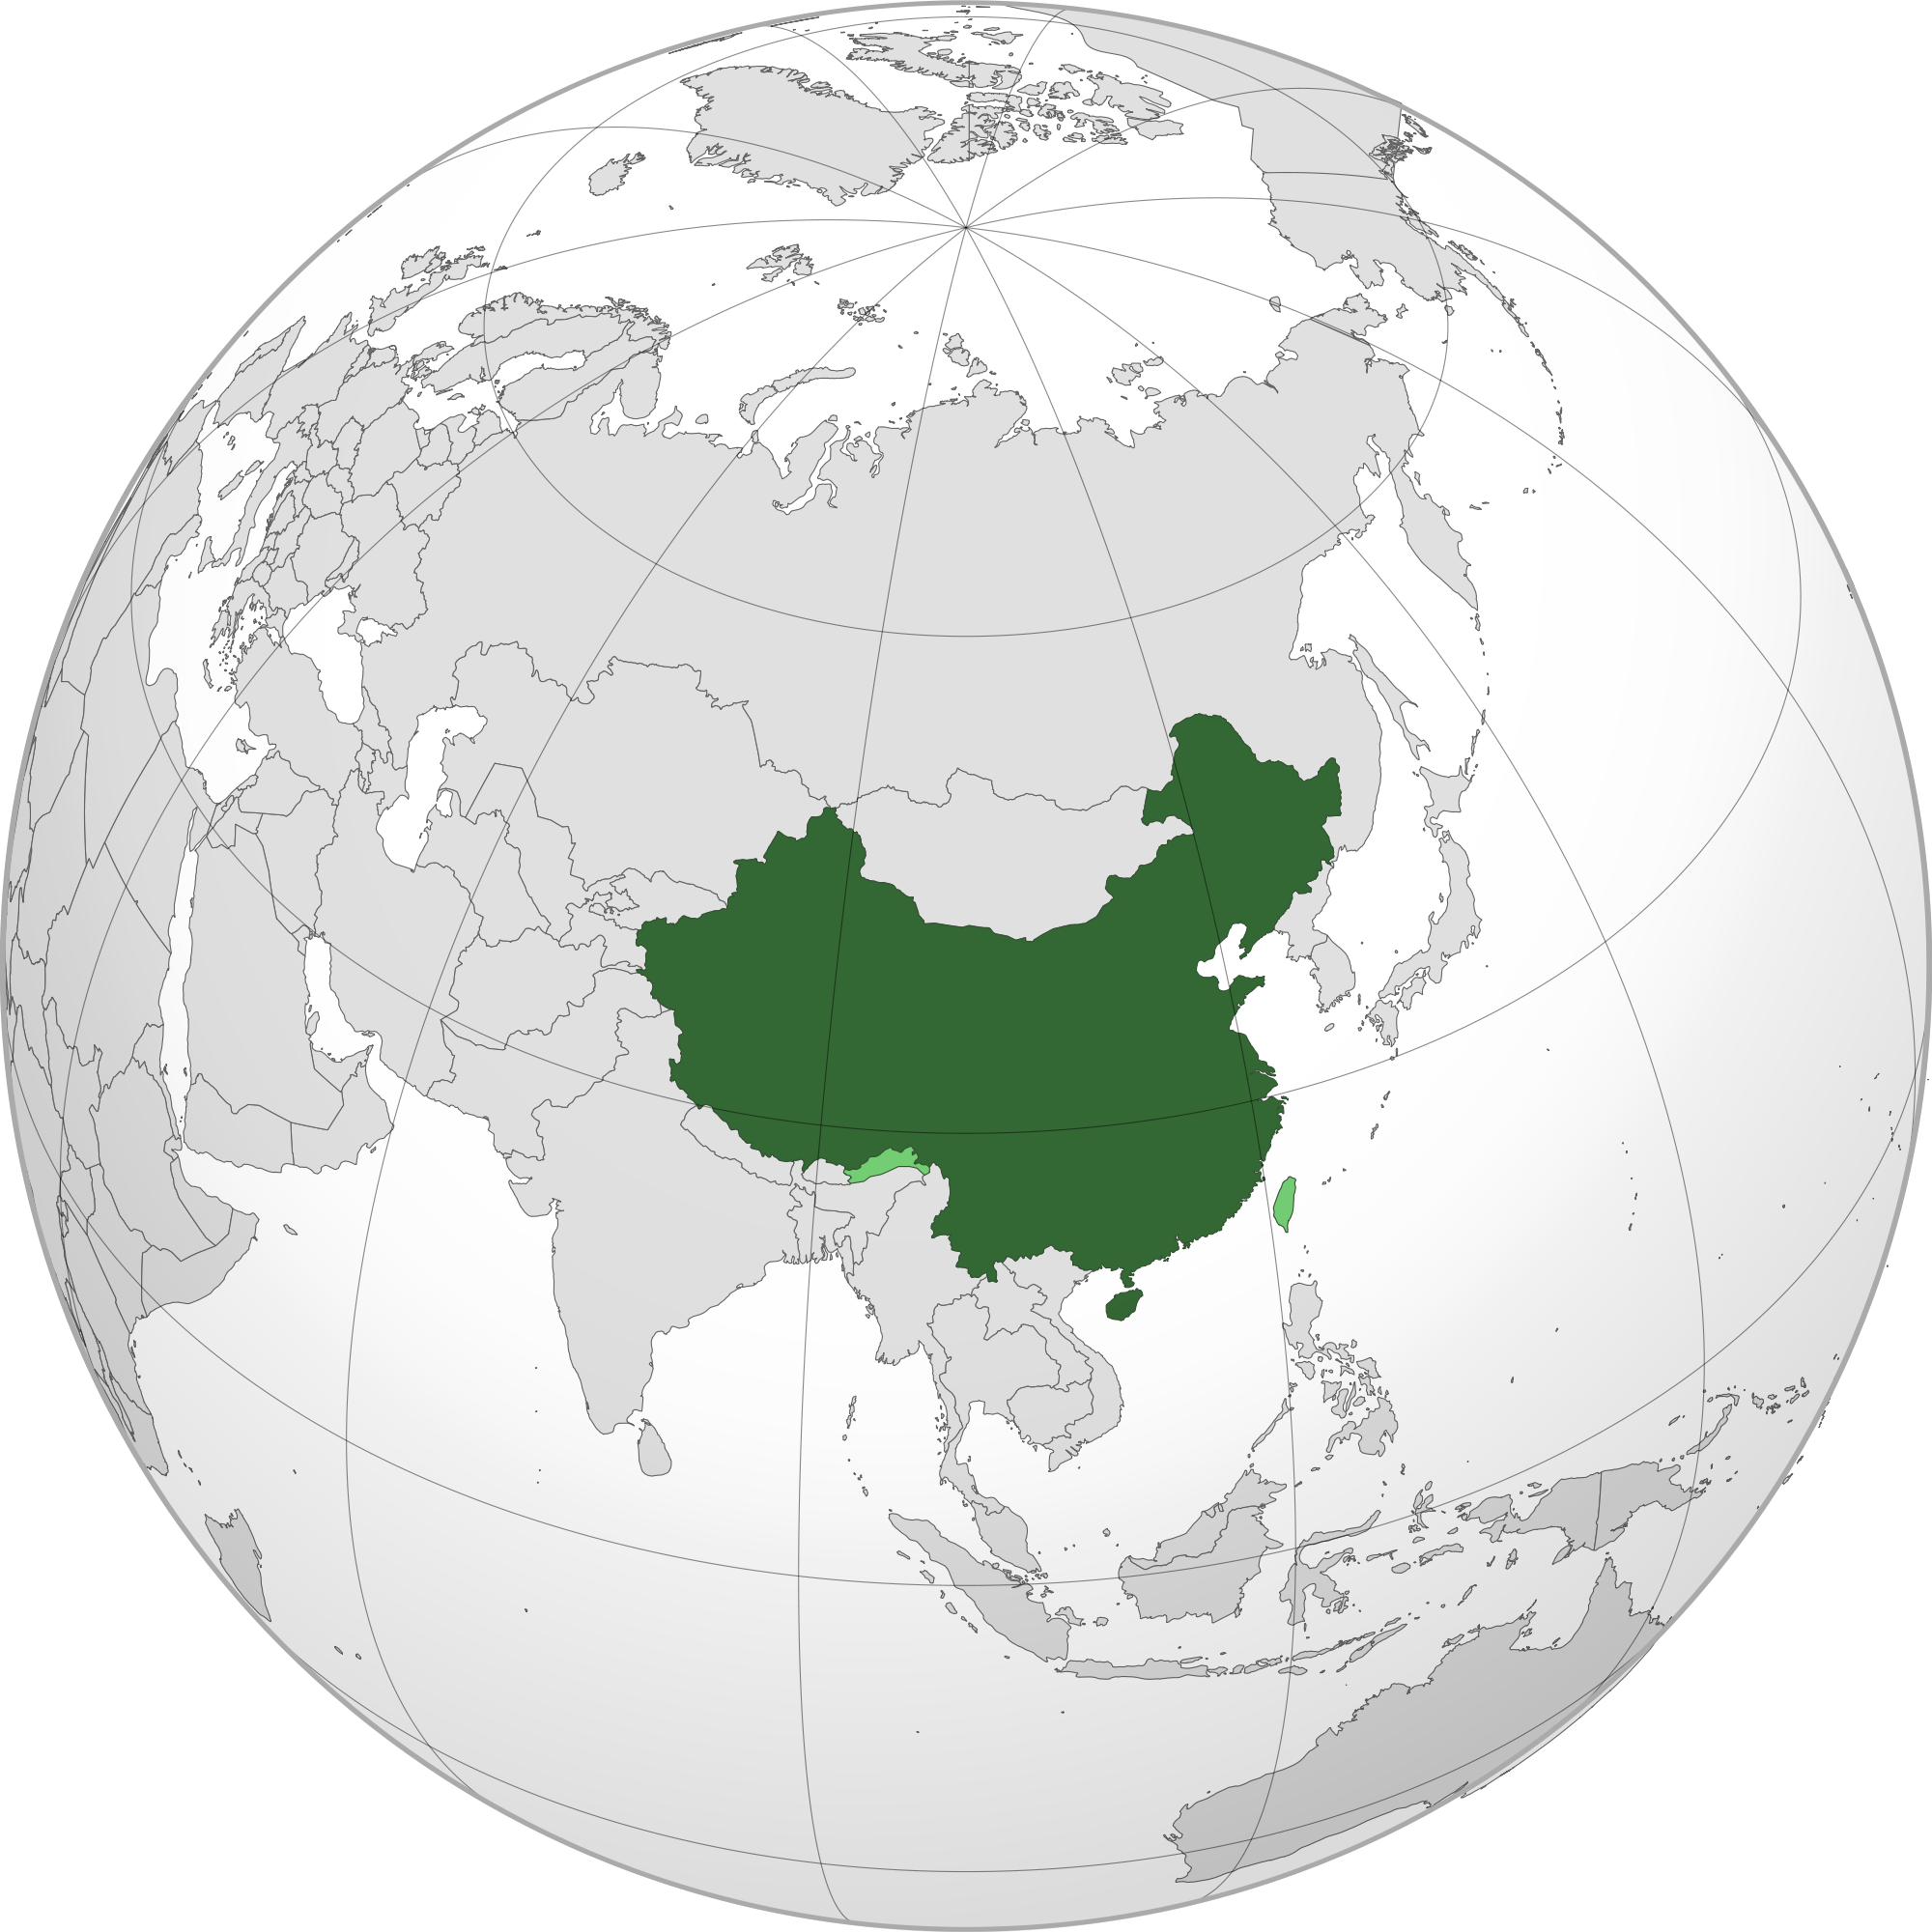 Location of the China in the World Map on